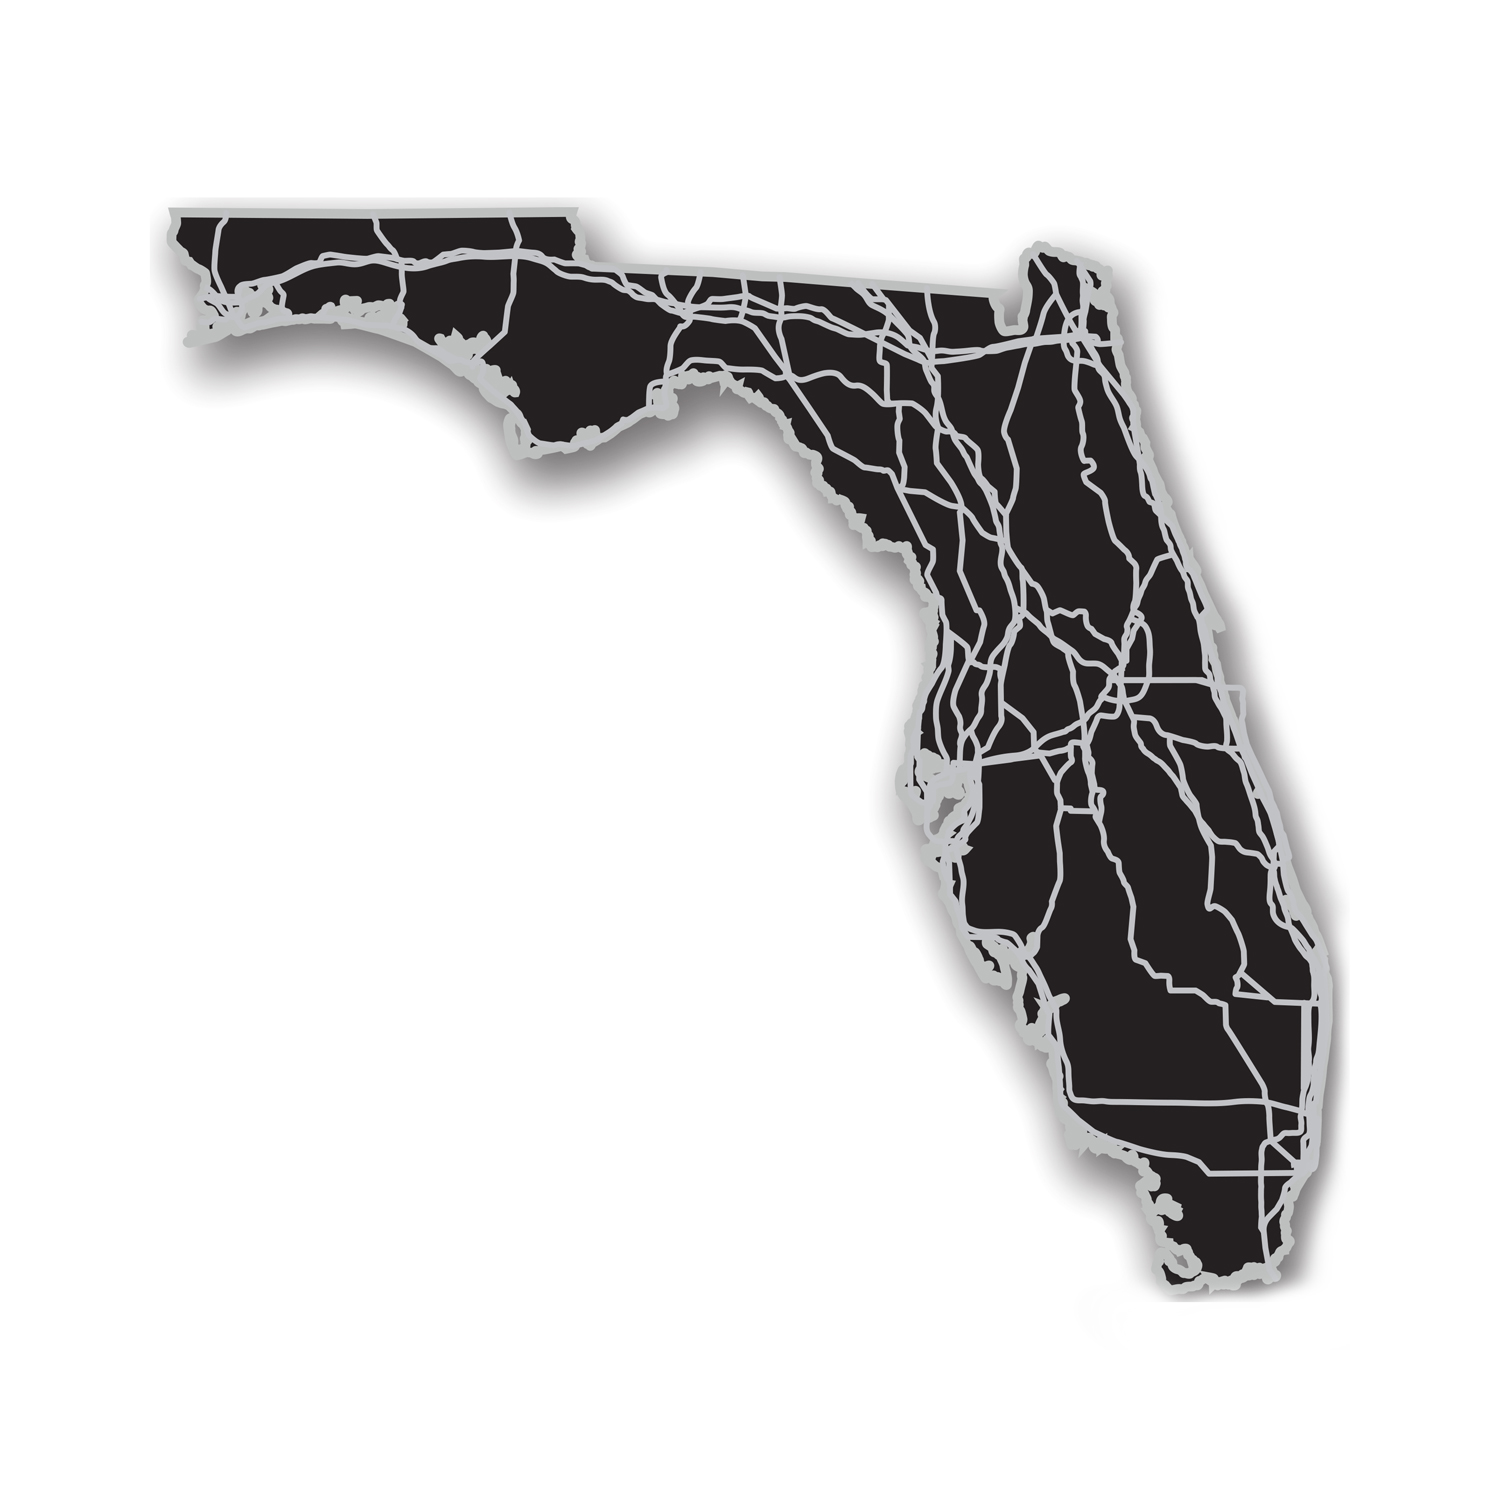 Florida  Acrylic Cutout State Map Modern Crowd Touch Of Modern - Florida map black and white